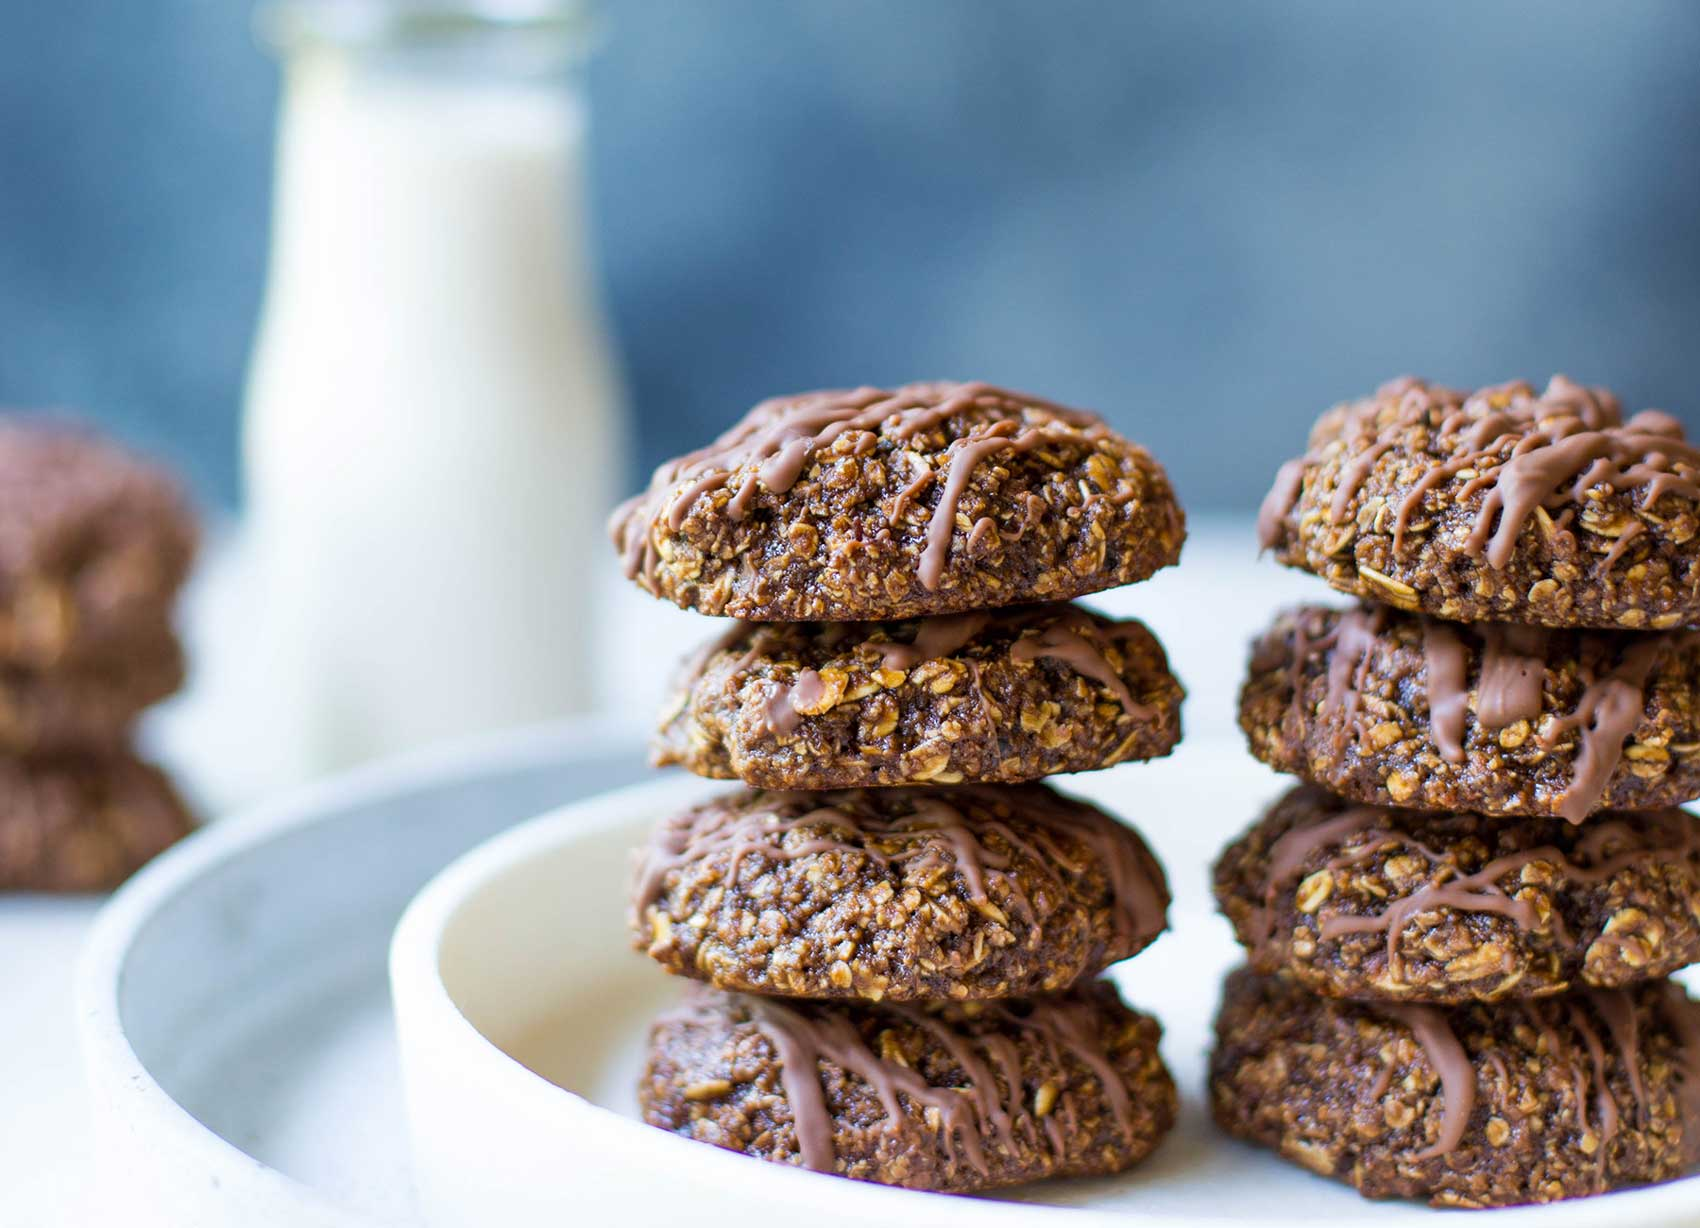 A stack of chocolate oat cookies with a bottle of milk